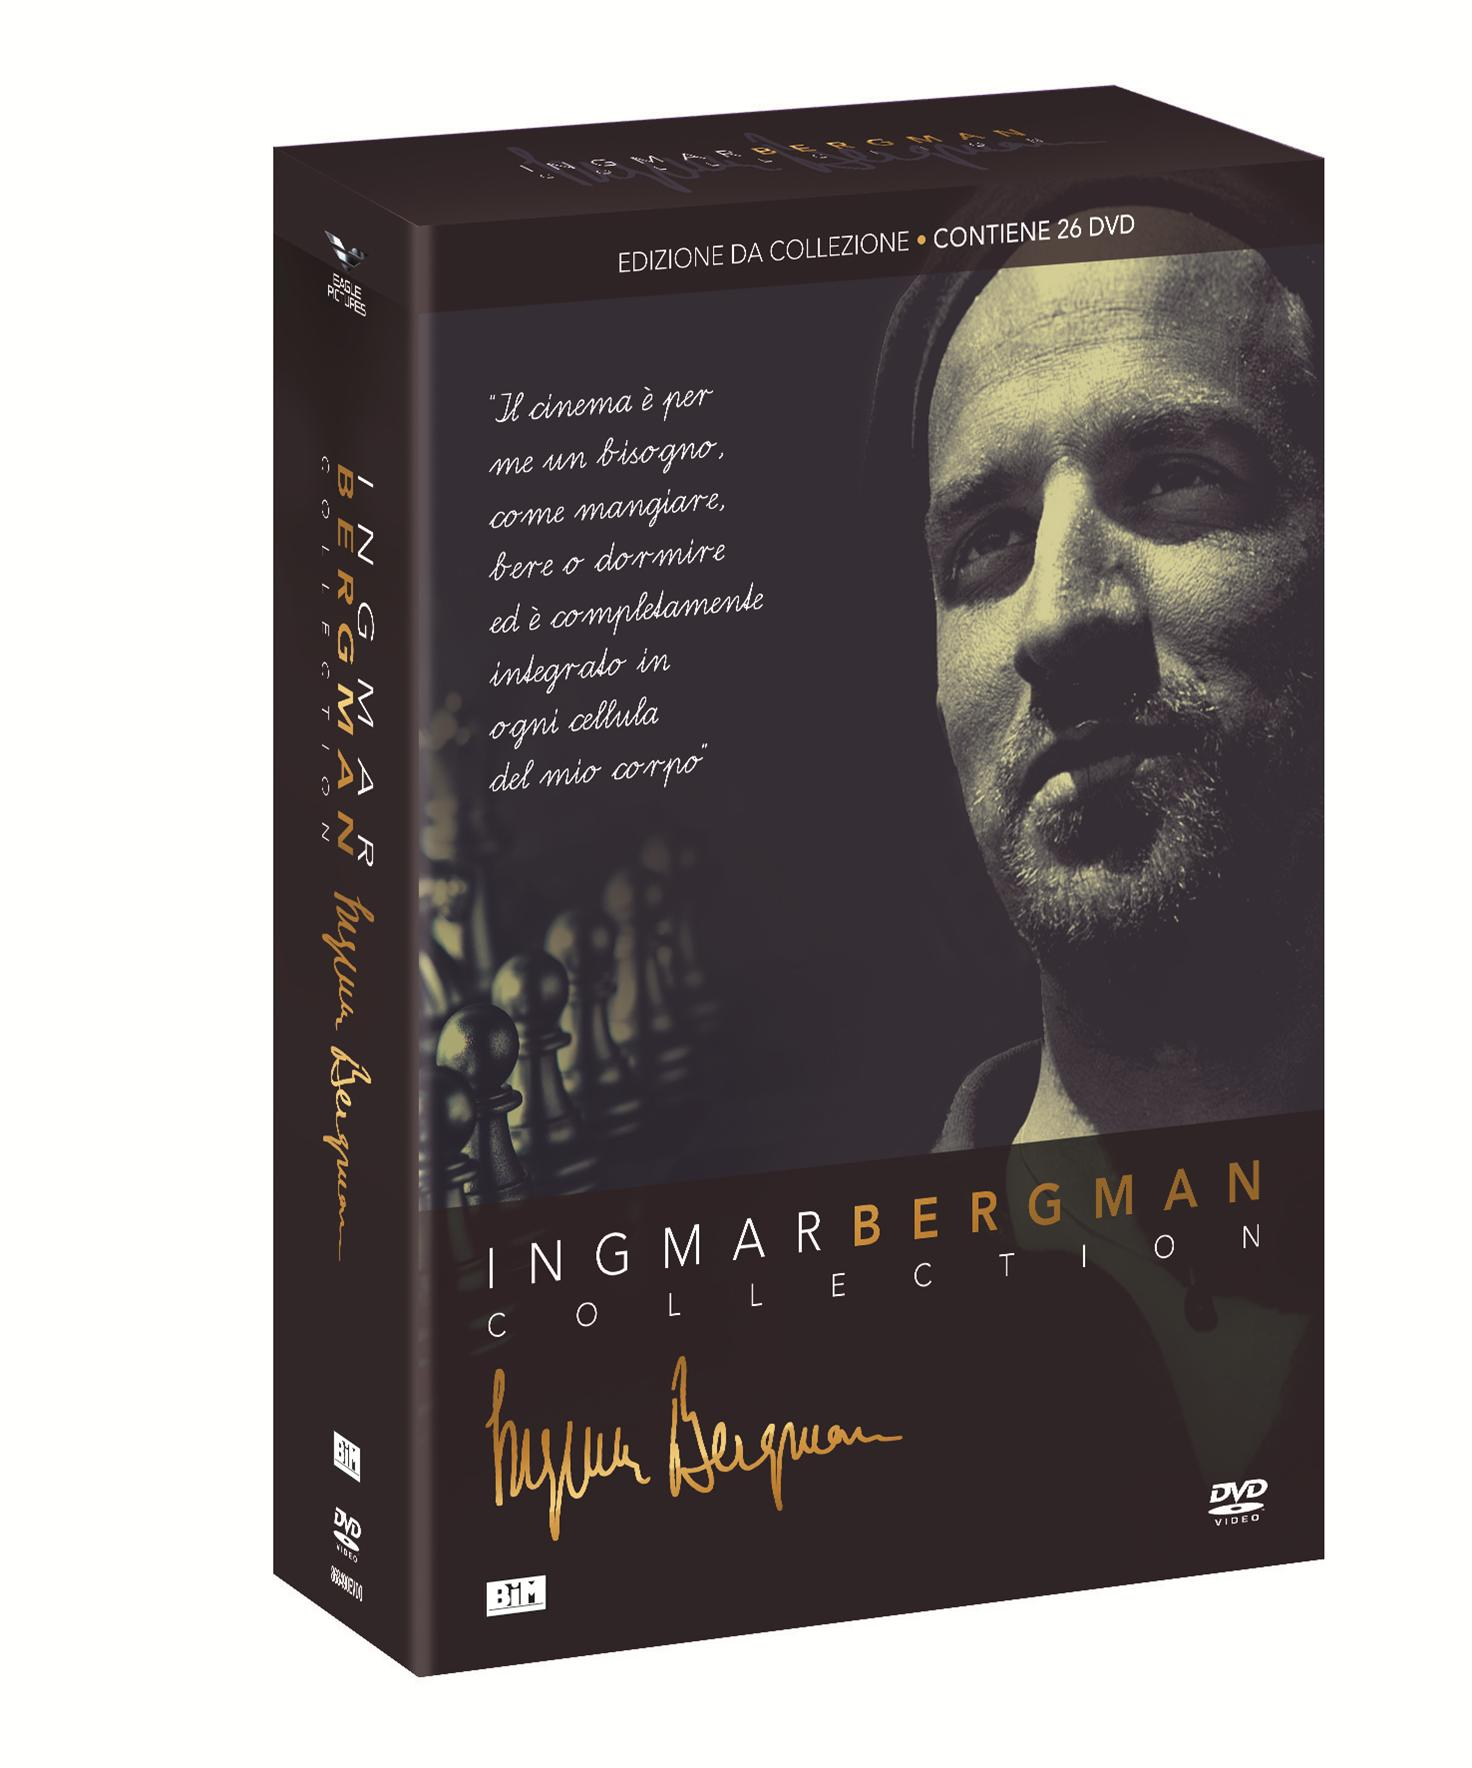 COF.INGMAR BERGMAN COLLECTION (26 DVD) (DVD)